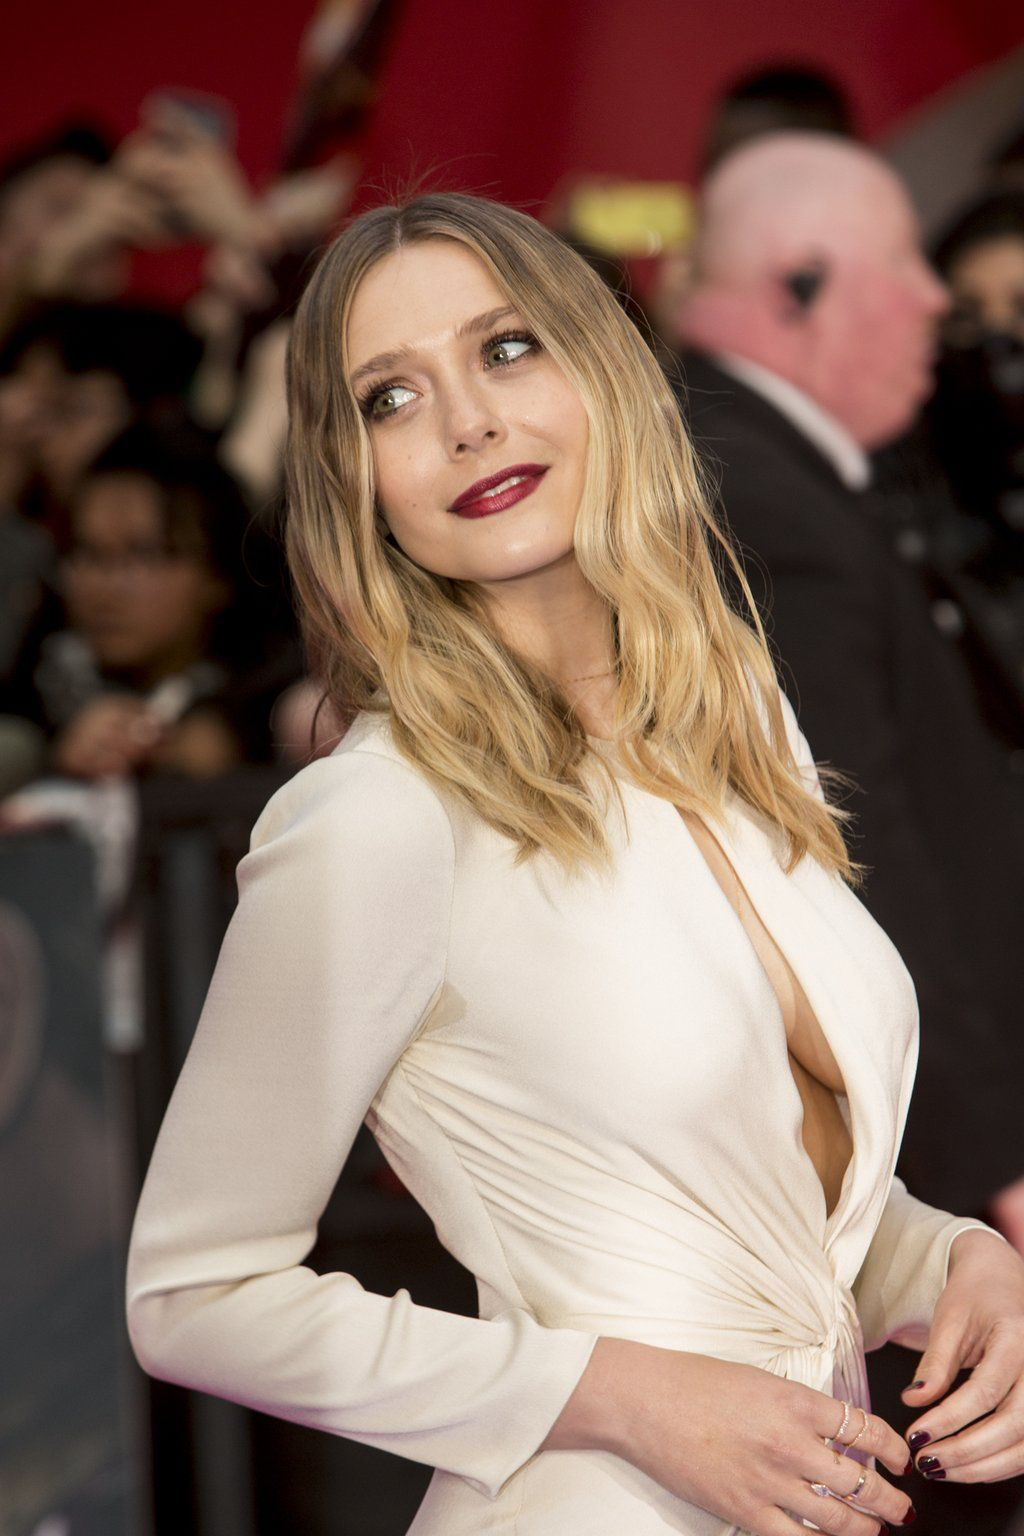 Cleavage Mary Kate Olsen nudes (28 photos), Topless, Fappening, Instagram, lingerie 2019